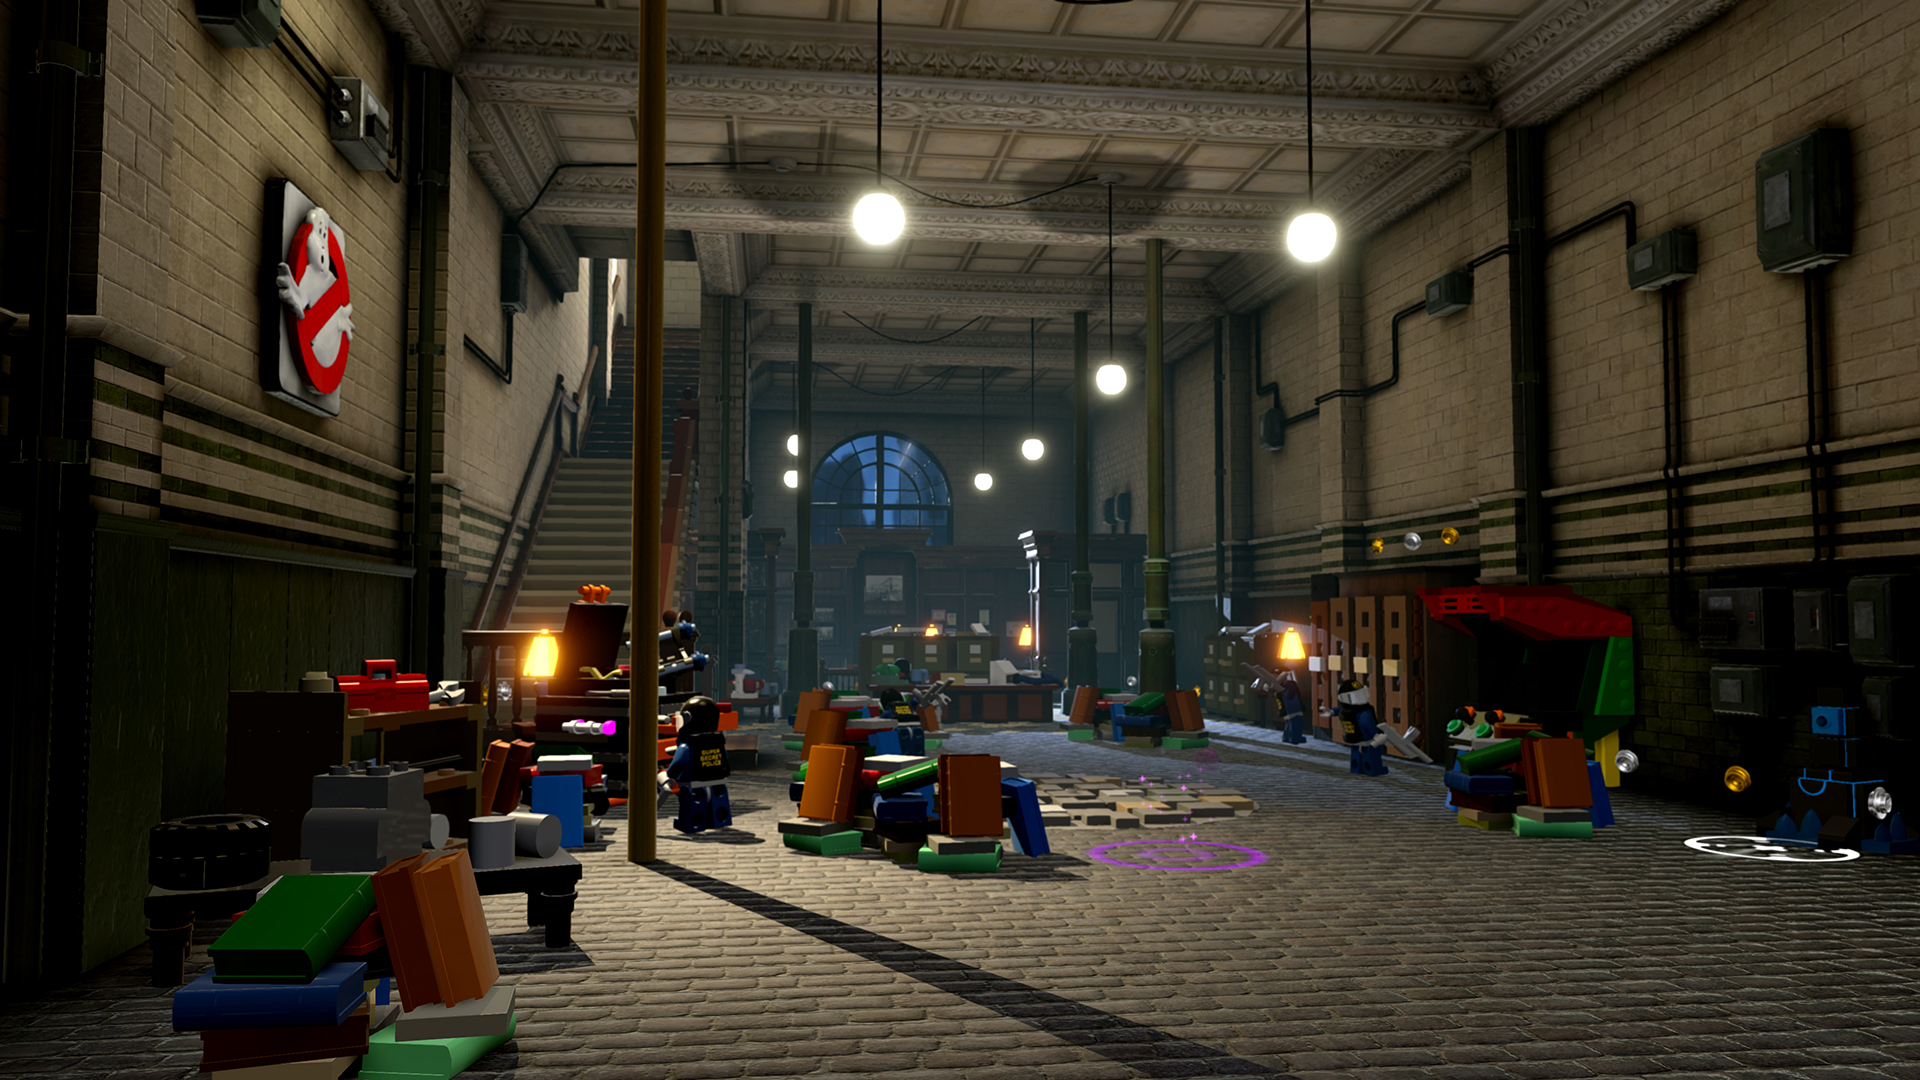 First Look Ghostbusters Hq In Lego Dimensions